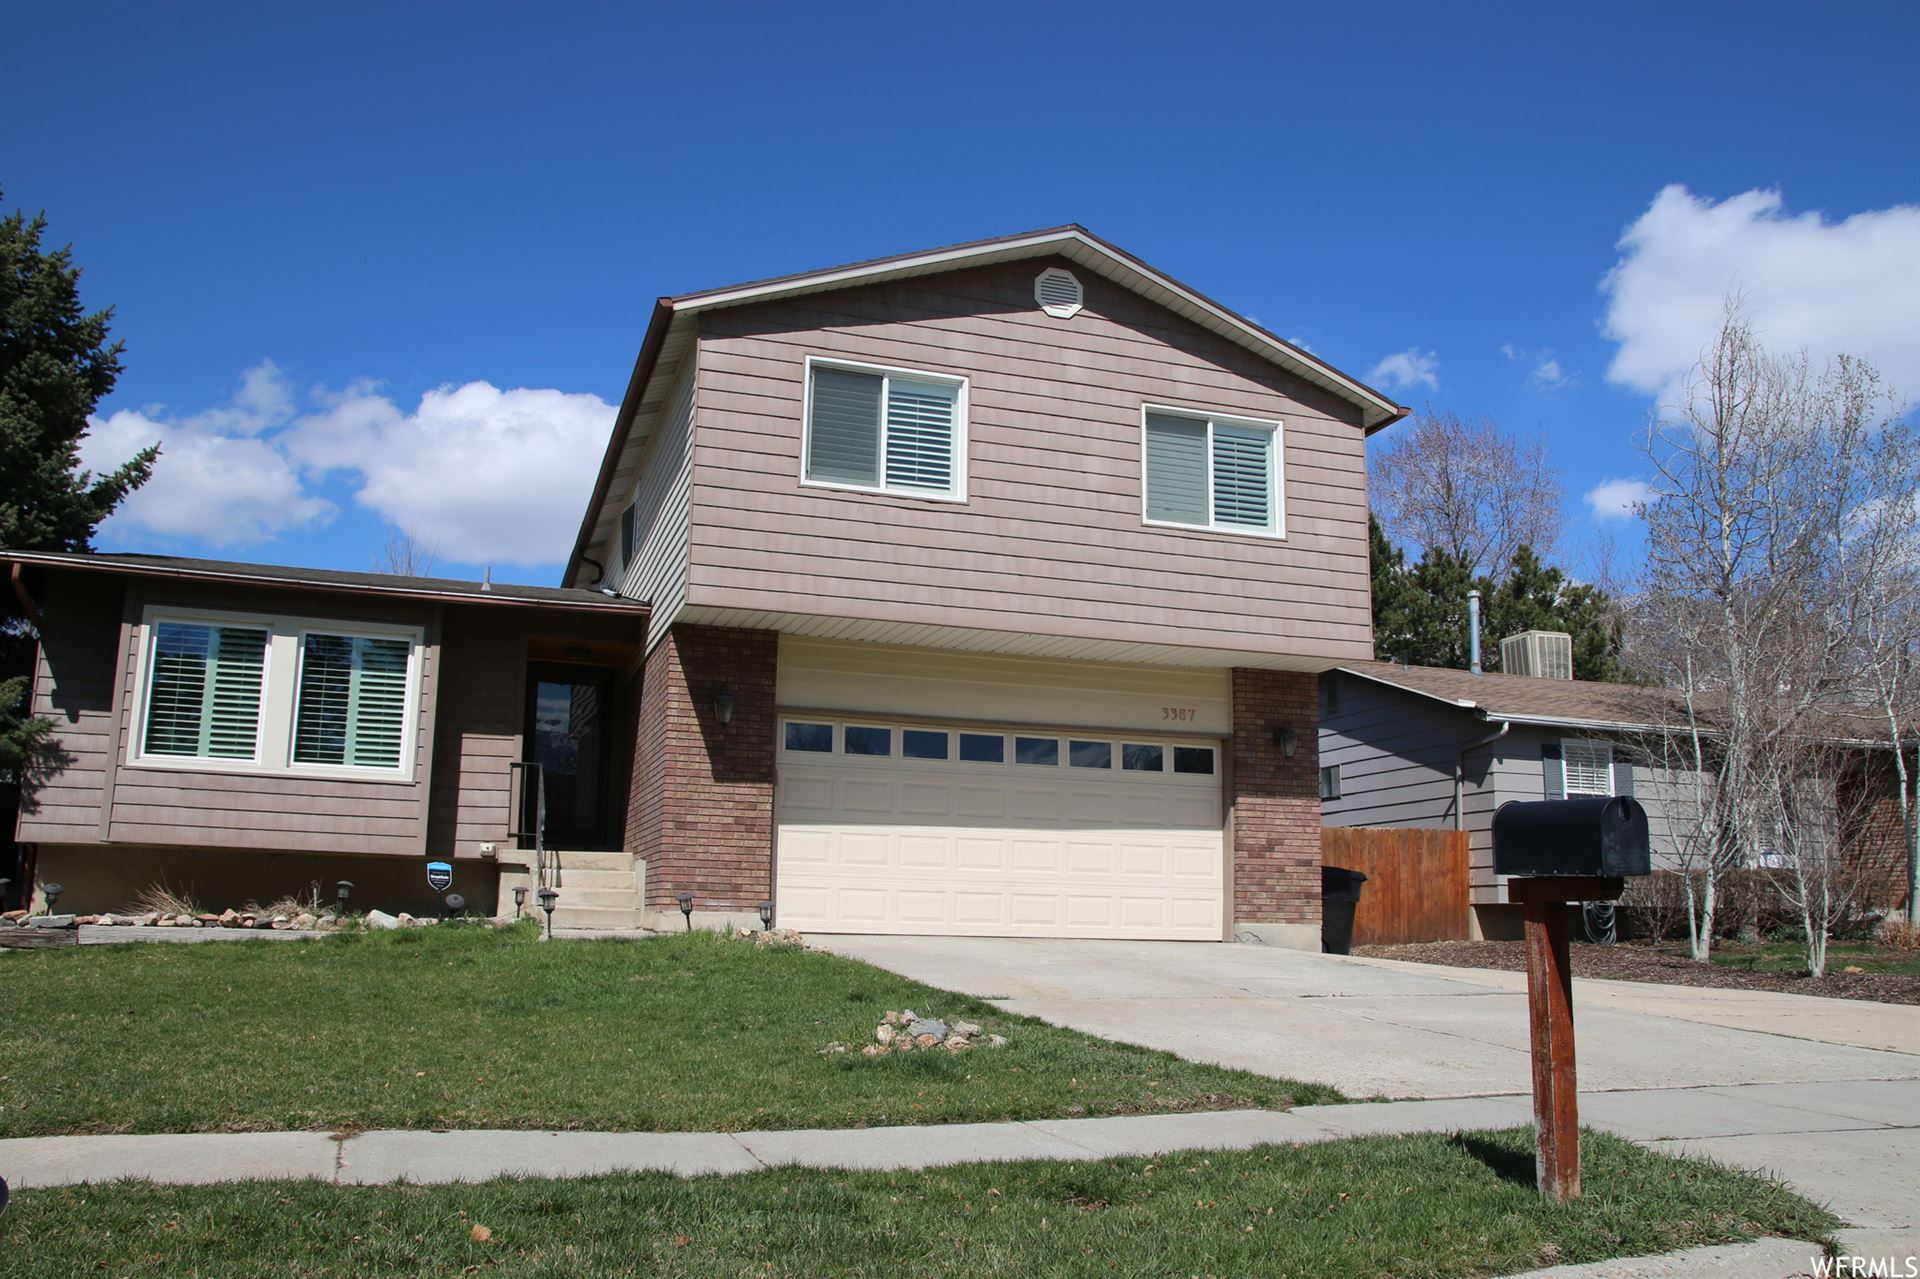 Photo of 3387 E OAKLEDGE RD, Cottonwood Heights, UT 84121 (MLS # 1732275)